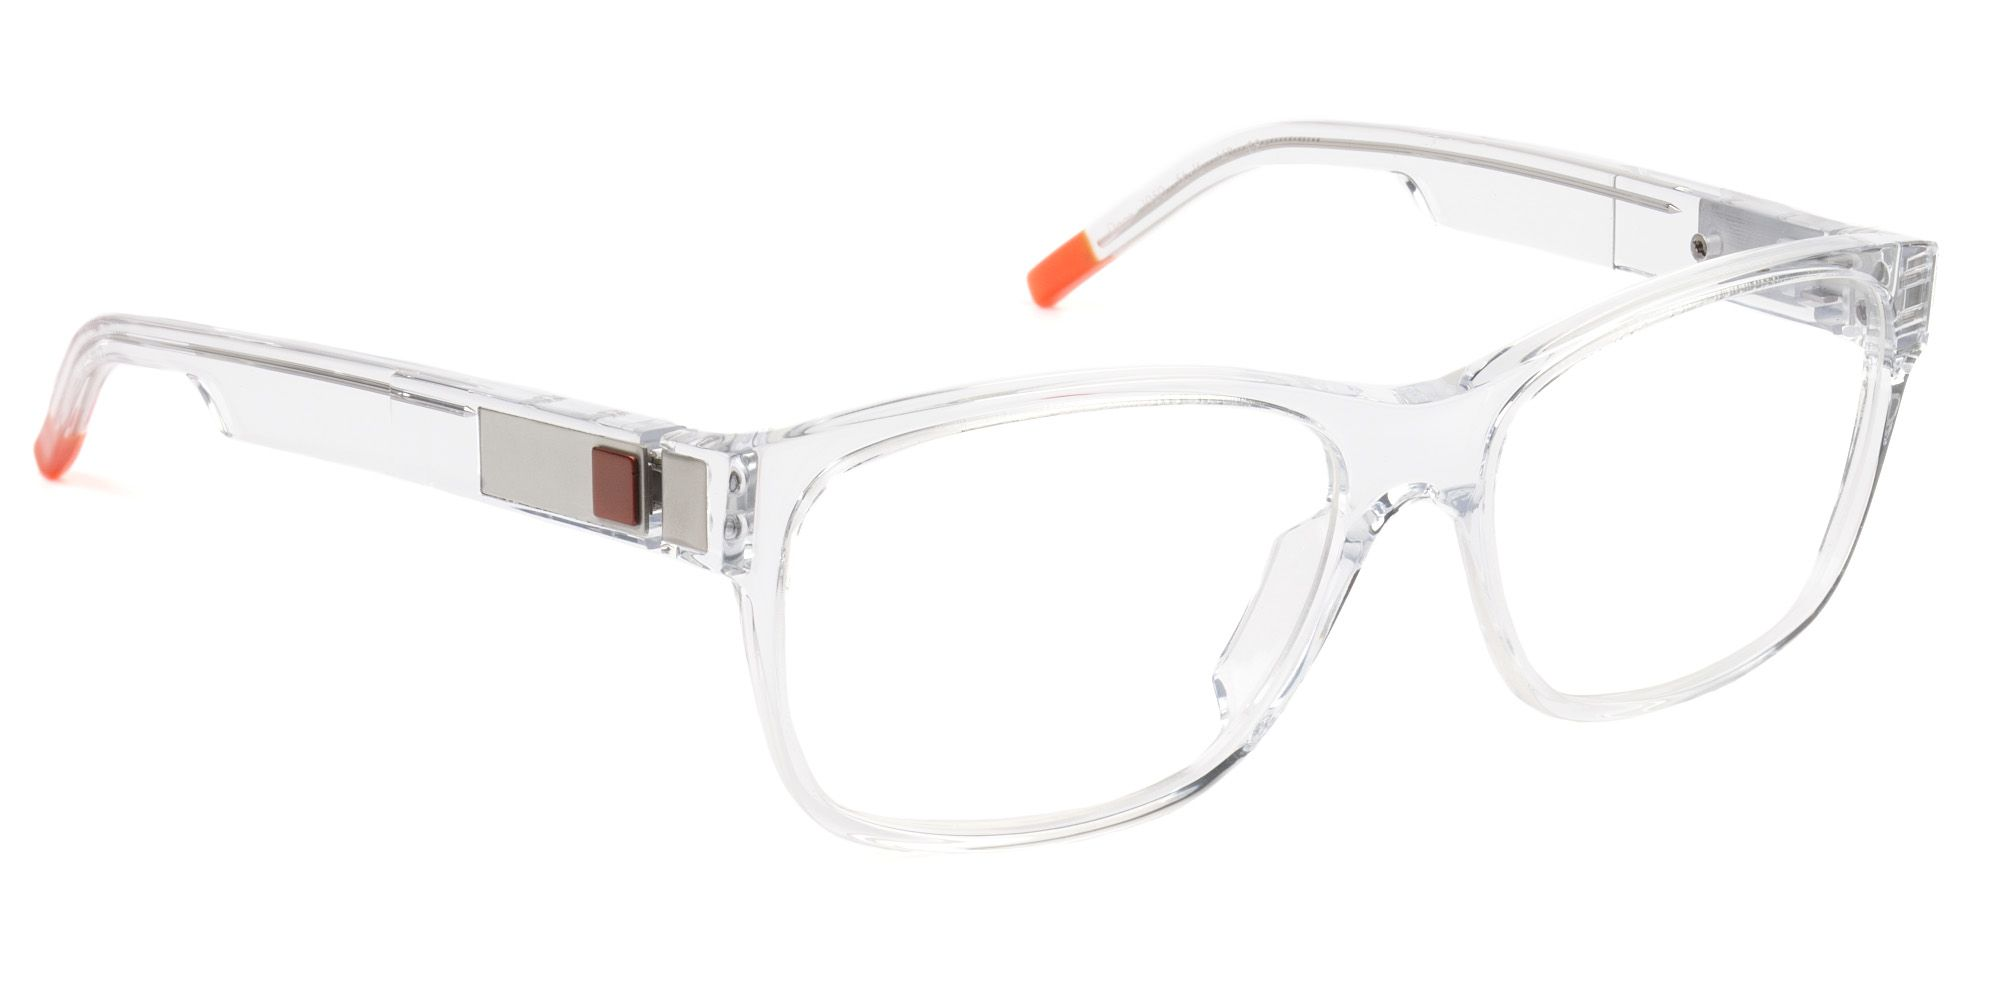 de stijl holland 1924 eyewear men eyeglasses frame daan in color 1950 shiny crystal clear